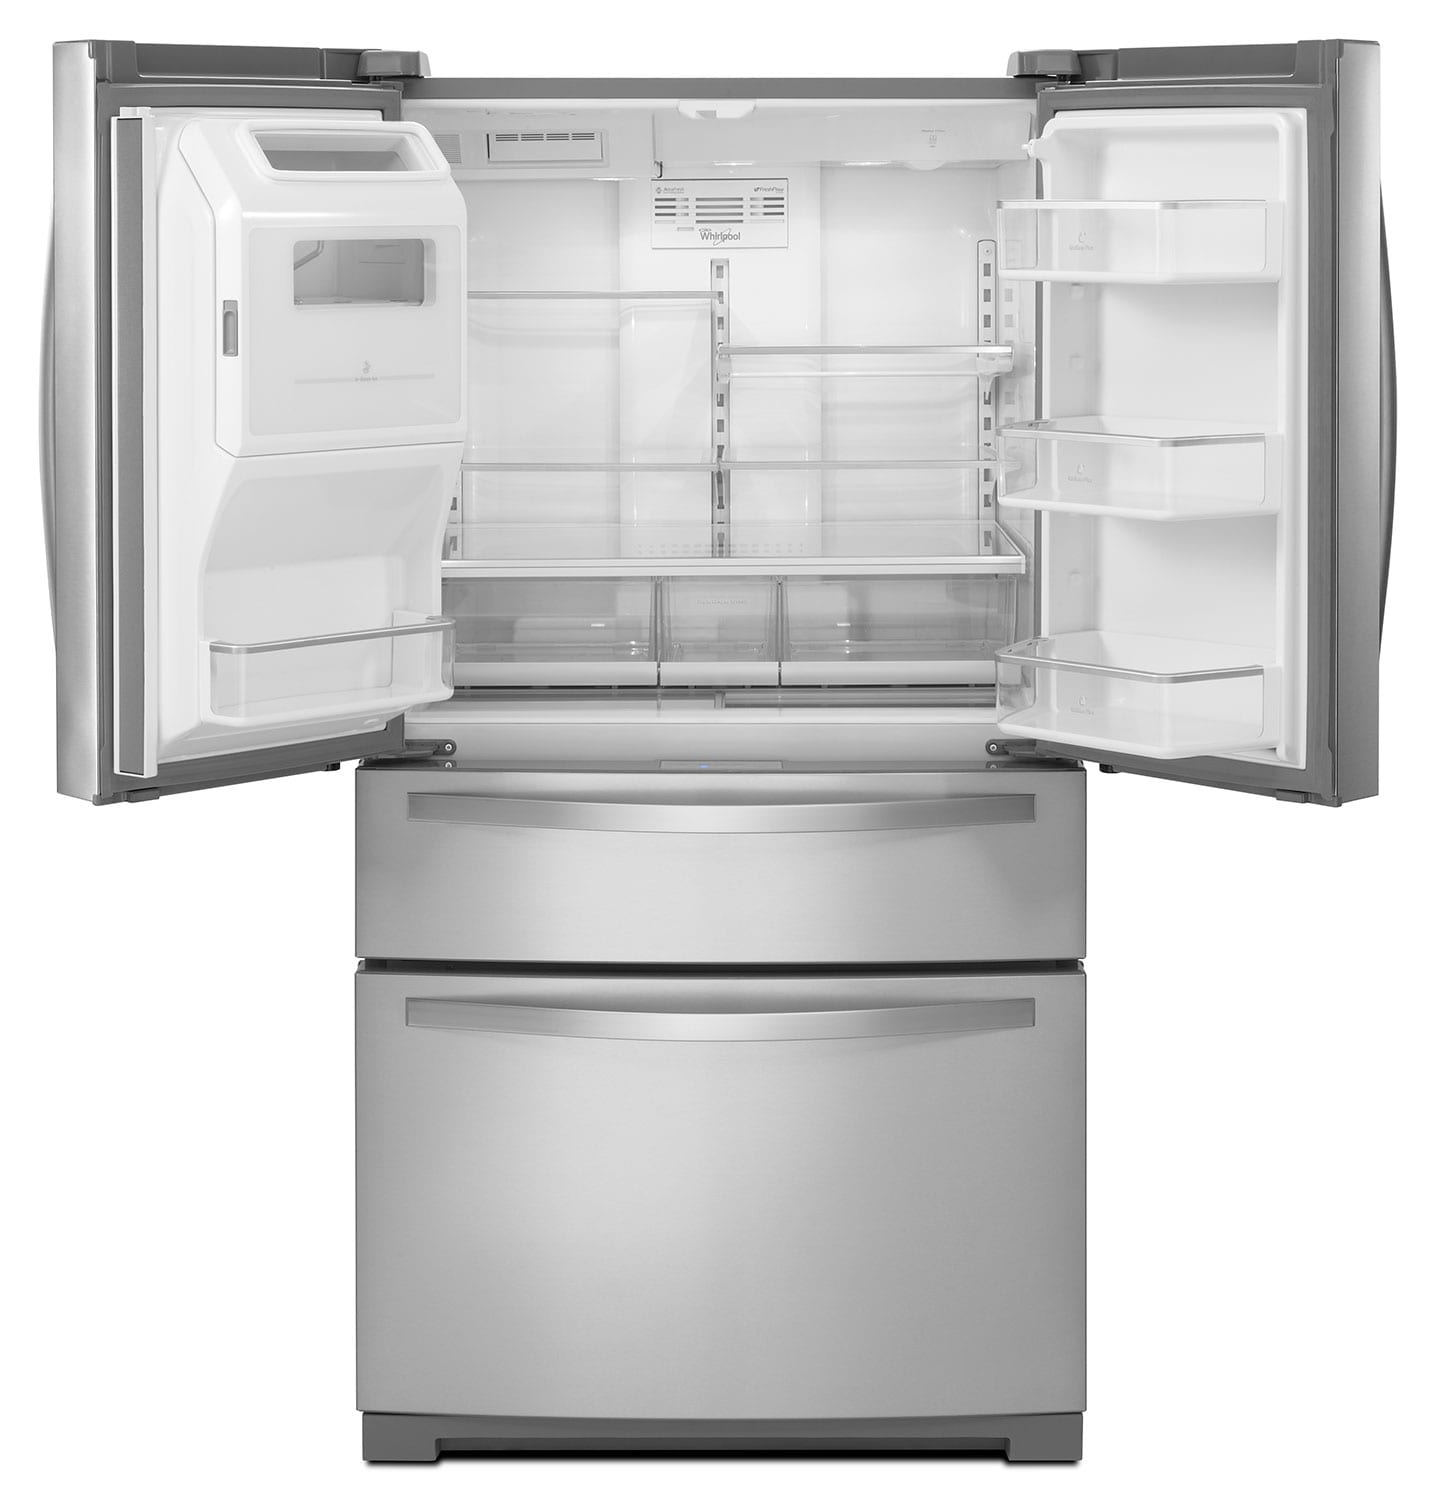 French Door Refrigerators: Whirlpool Stainless Steel French Door Refrigerator (26.2